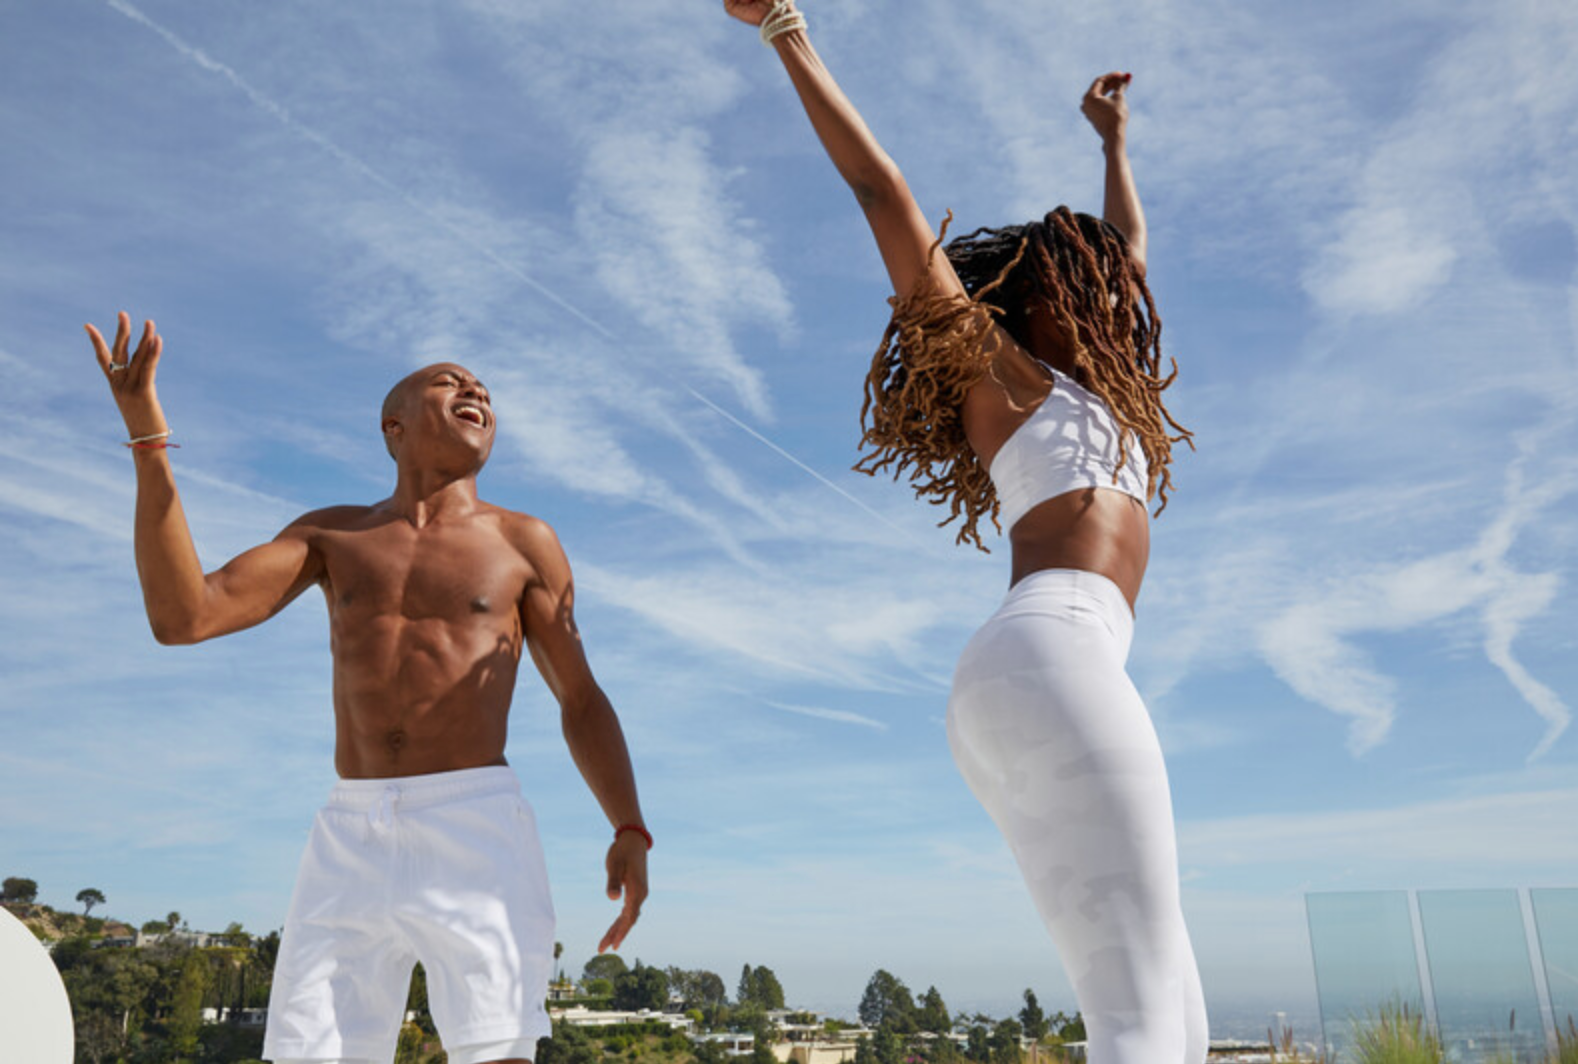 A man and woman wearing all white Alo clothing dancing to music in celebration.